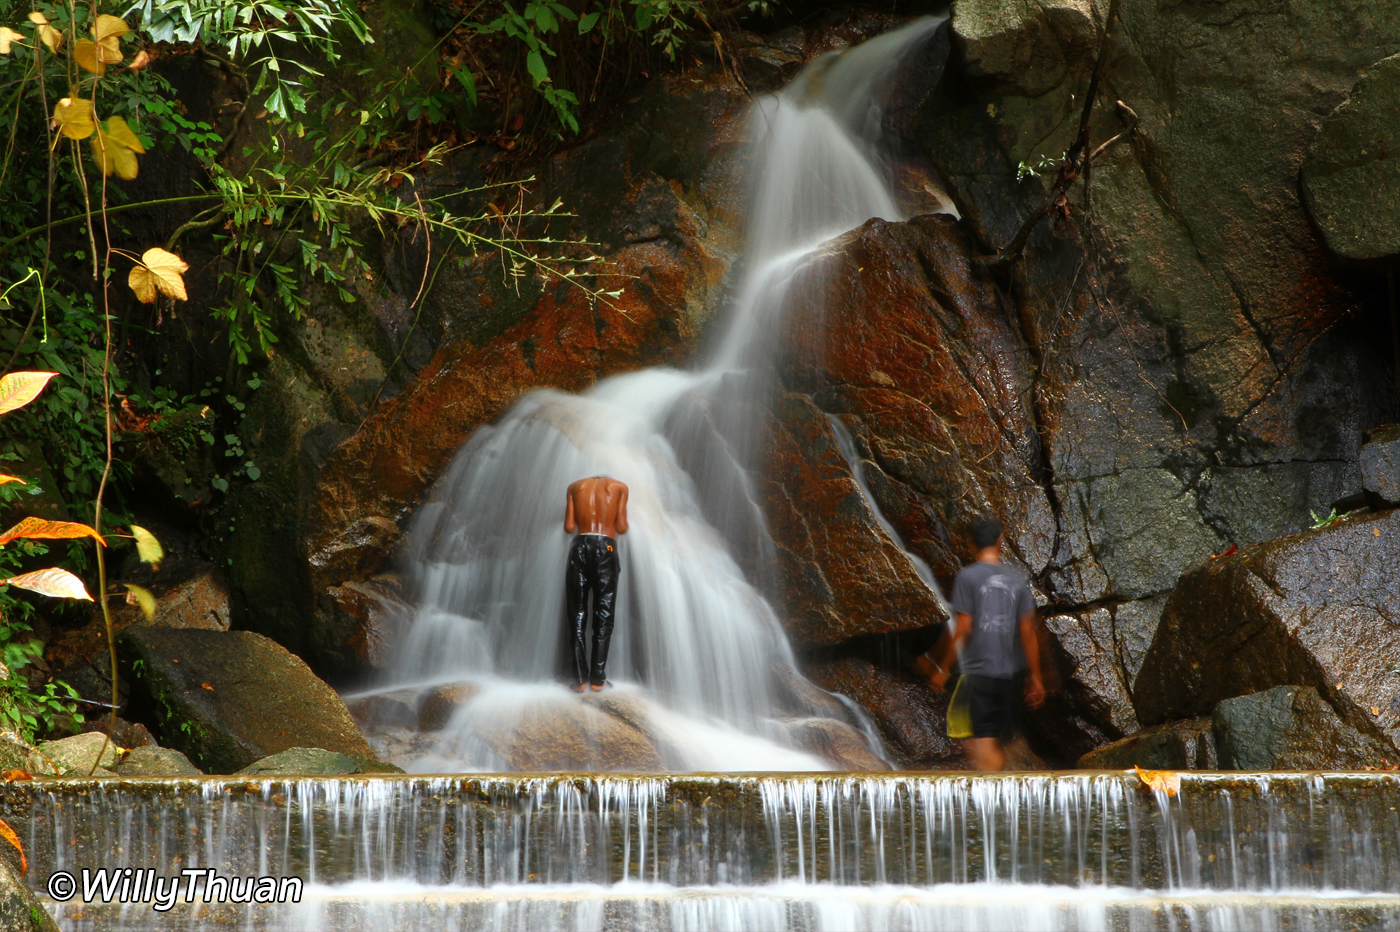 Not Much Time Or Weather Left To Bike >> Kathu Waterfall in Phuket - Phuket 101